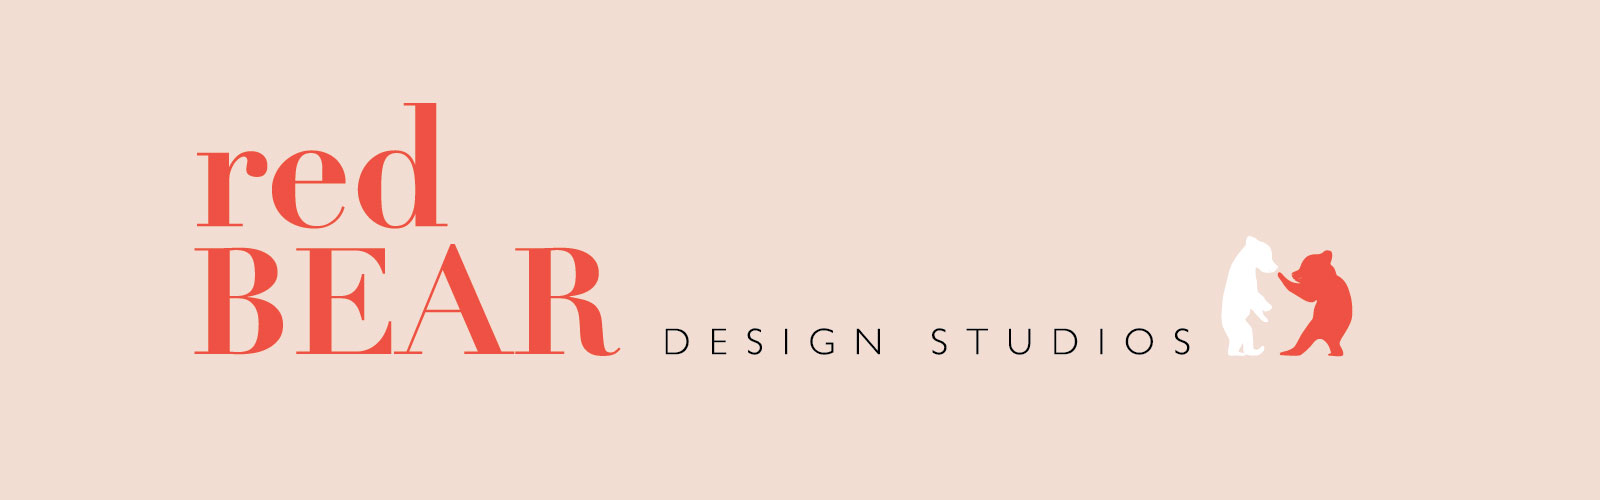 Red Bear Design Studio Hero Banner Mobile_Artboard 2